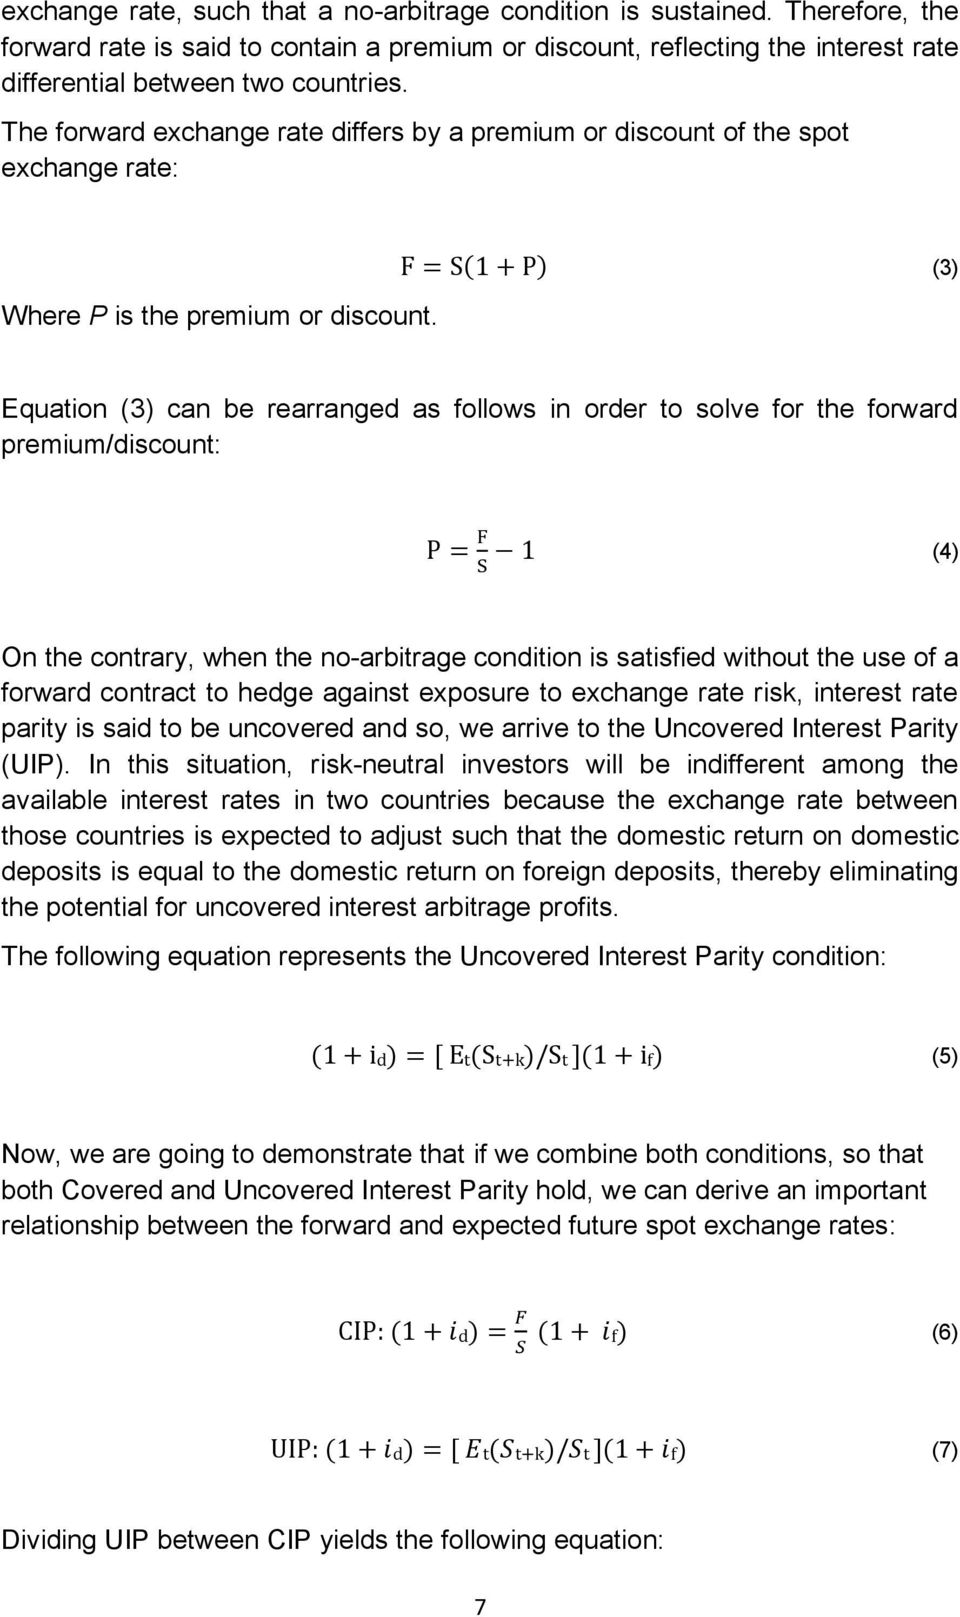 (3) Equation (3) can be rearranged as follows in order to solve for the forward premium/discount: (4) On the contrary, when the no-arbitrage condition is satisfied without the use of a forward